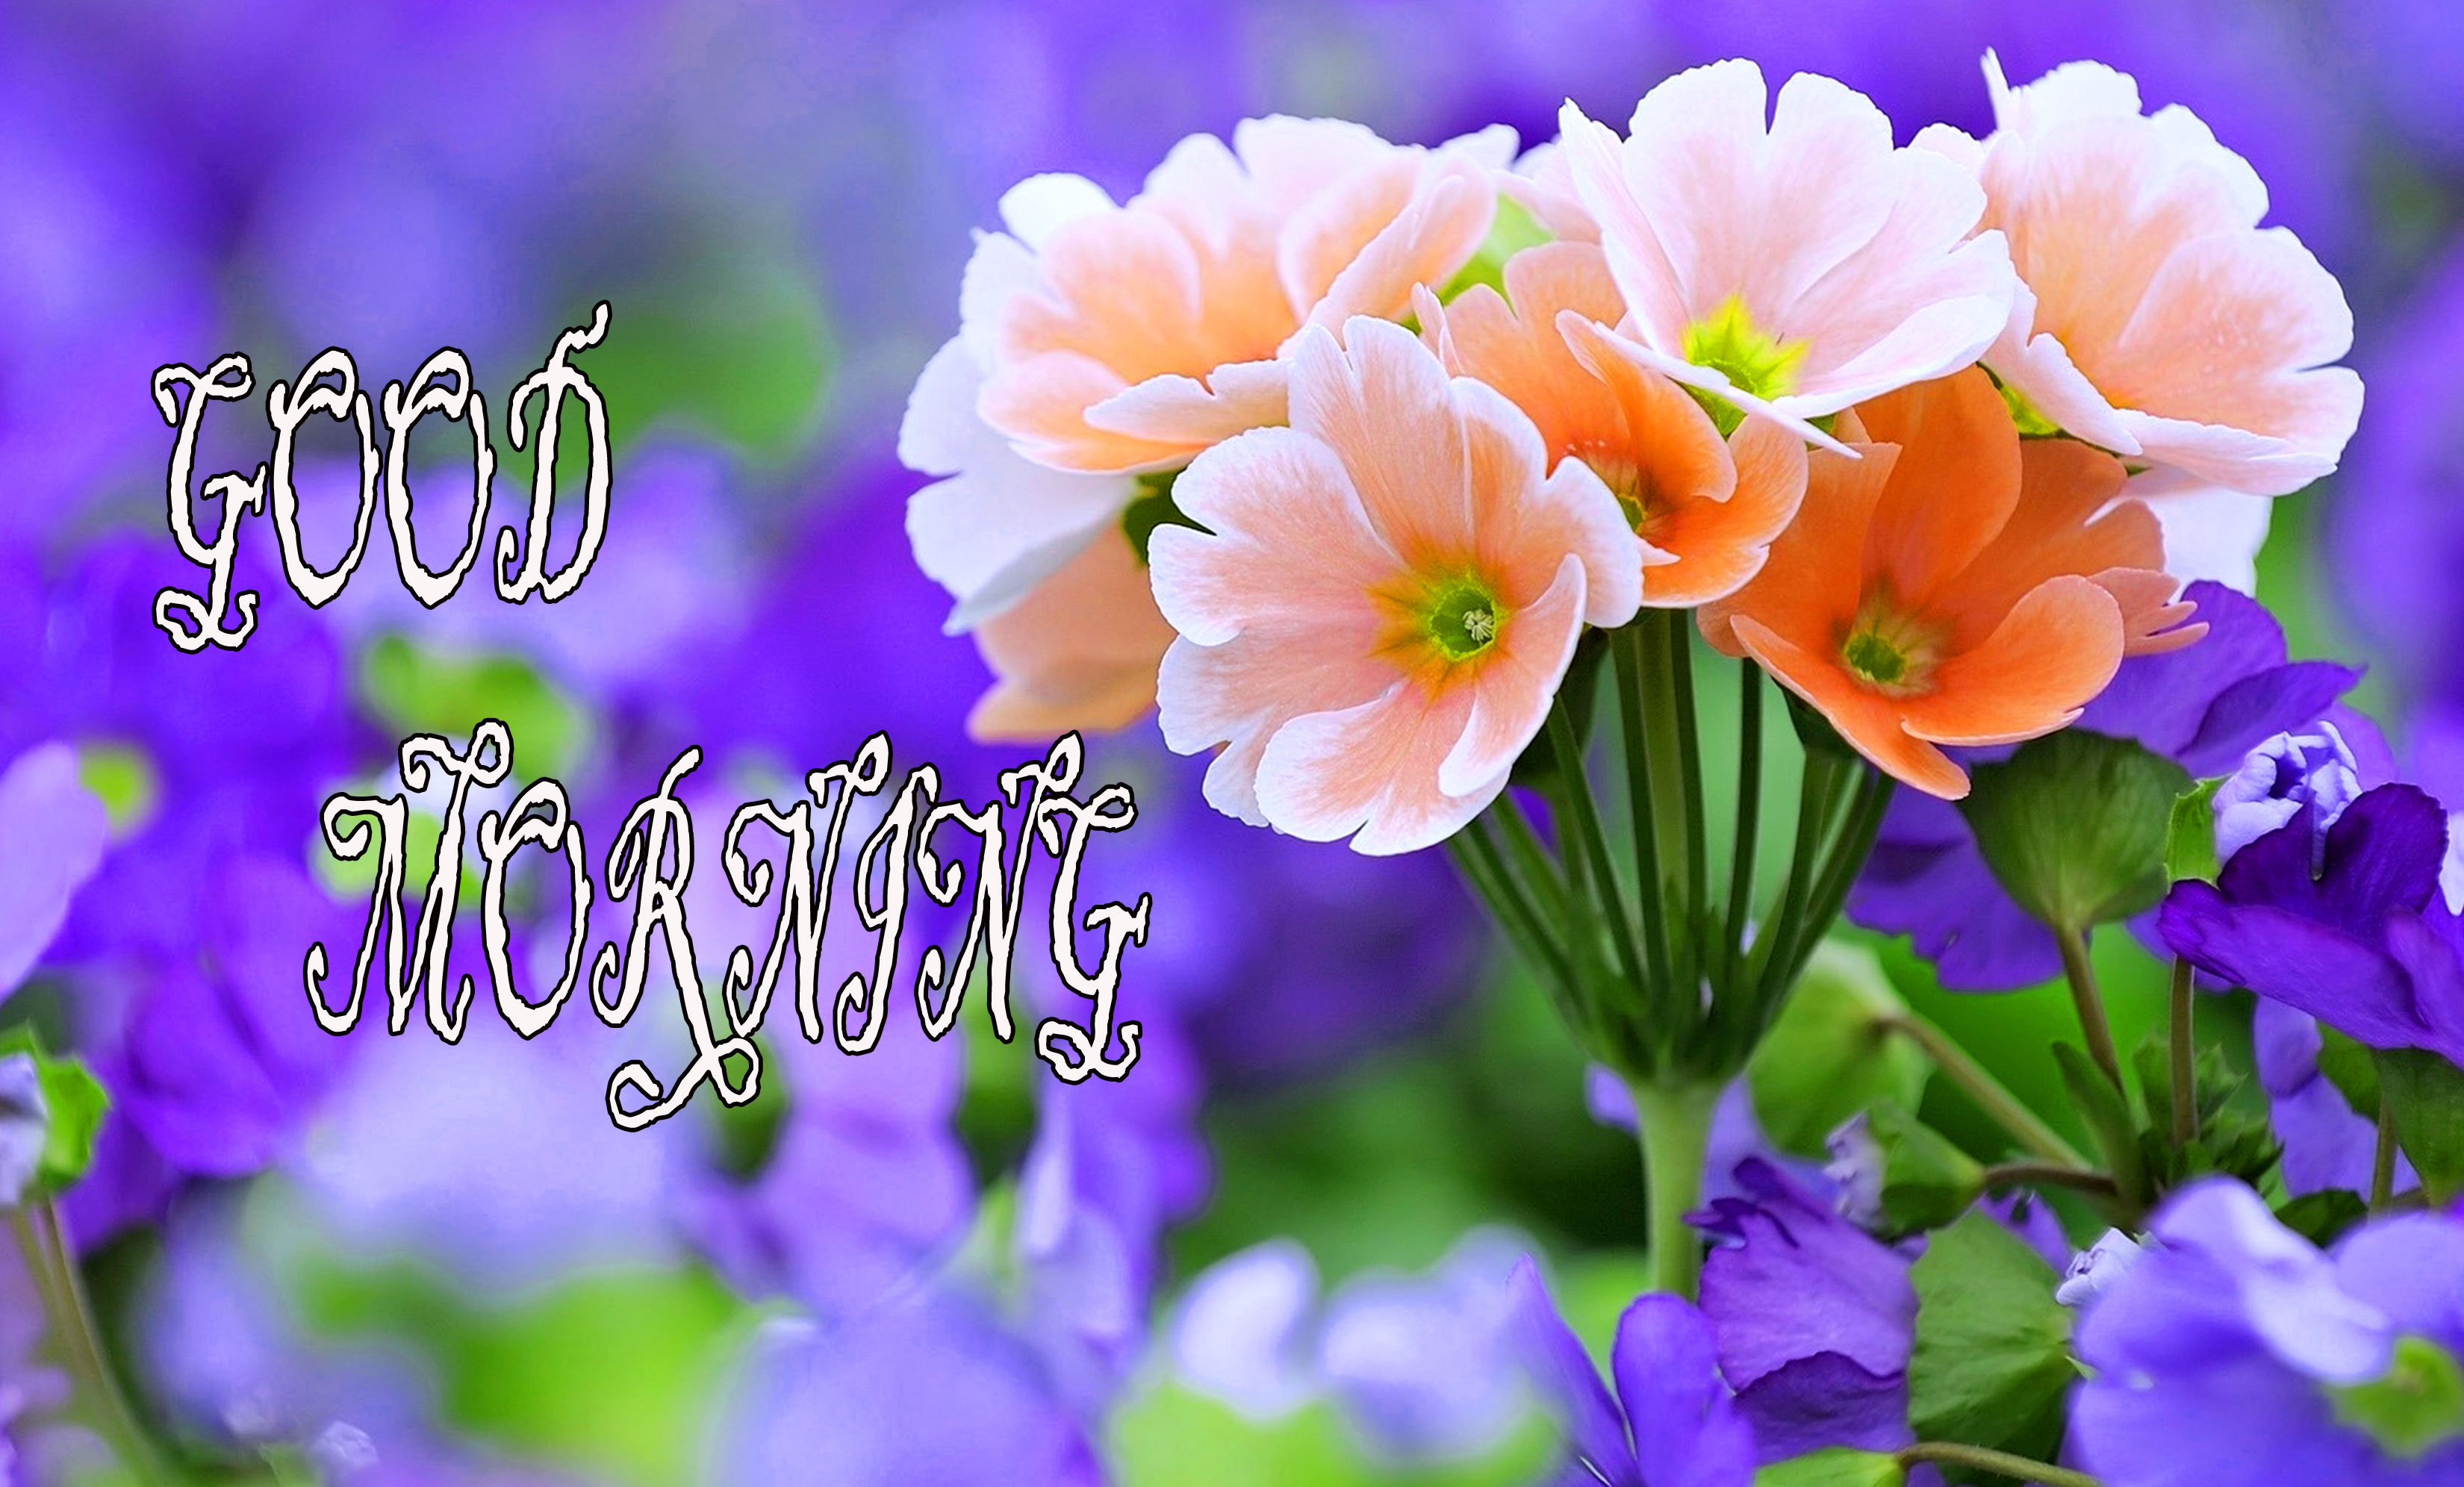 GOOD MORNING IMAGE WITH BEAUTIFUL FLOWERS NATURE PHOTO FOR FACEBOOK